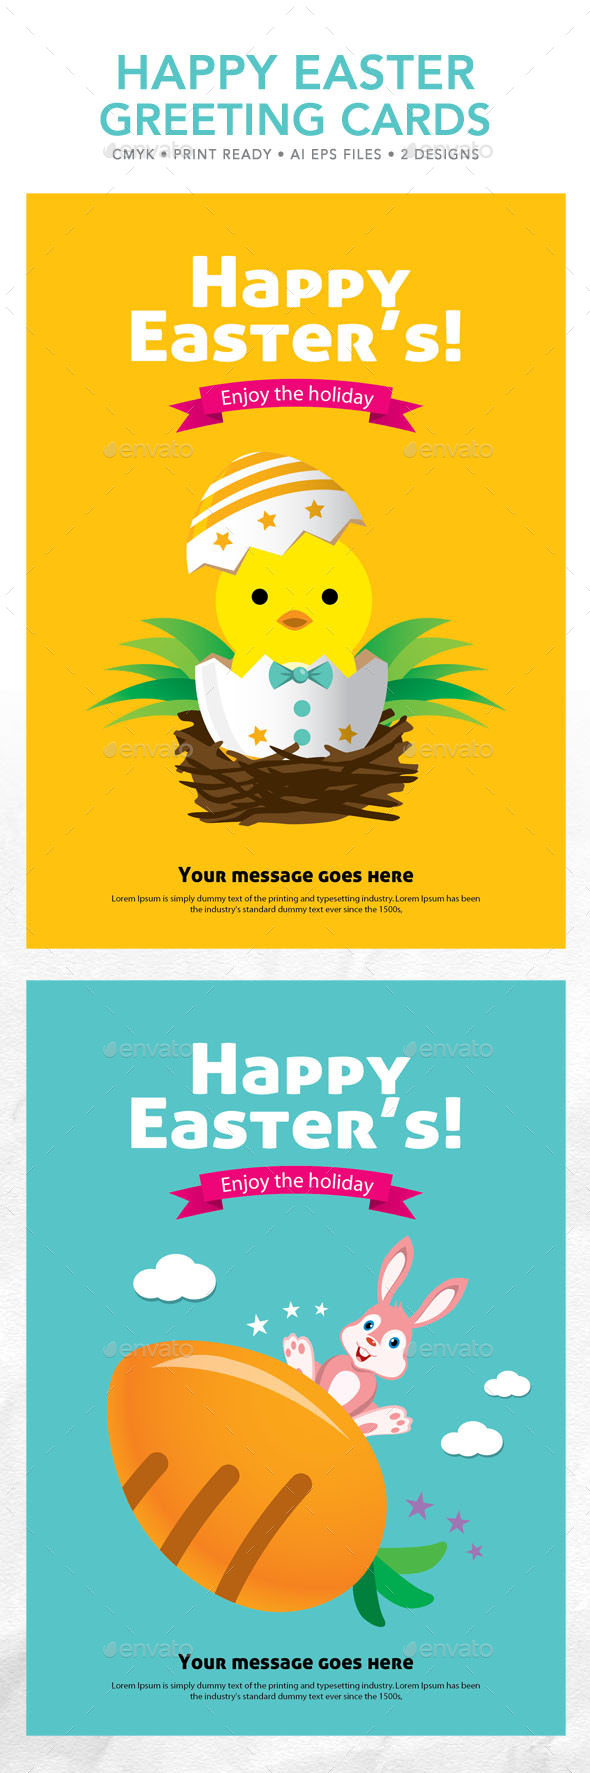 Happy Easter Greeting Cards - Seasons/Holidays Conceptual